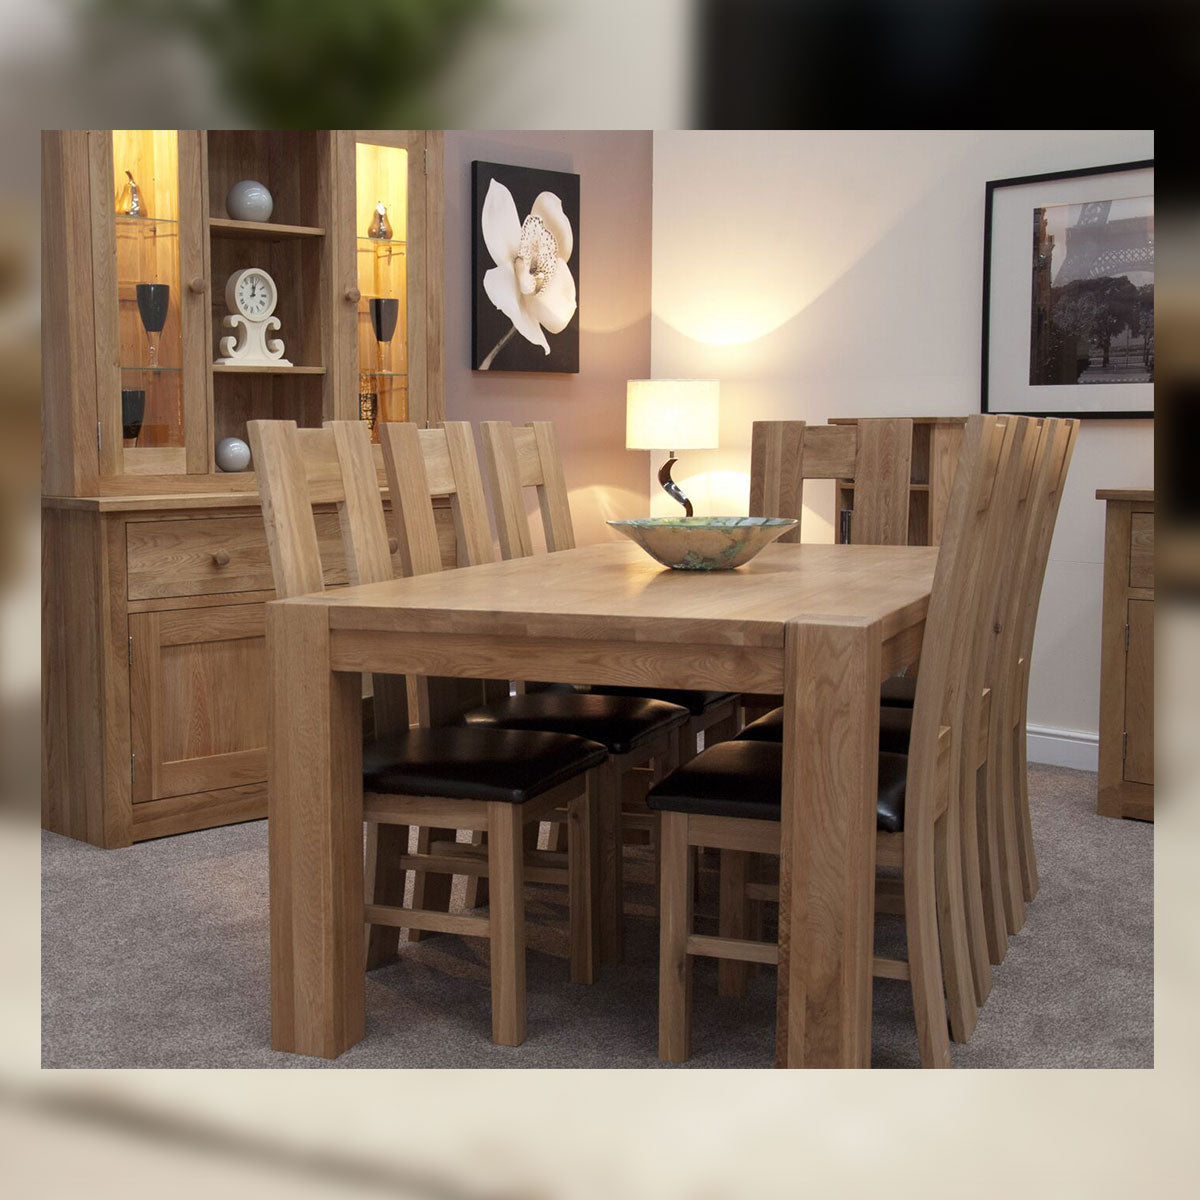 Barcelona Oak Chunky 6FT x 3FT Oak Table